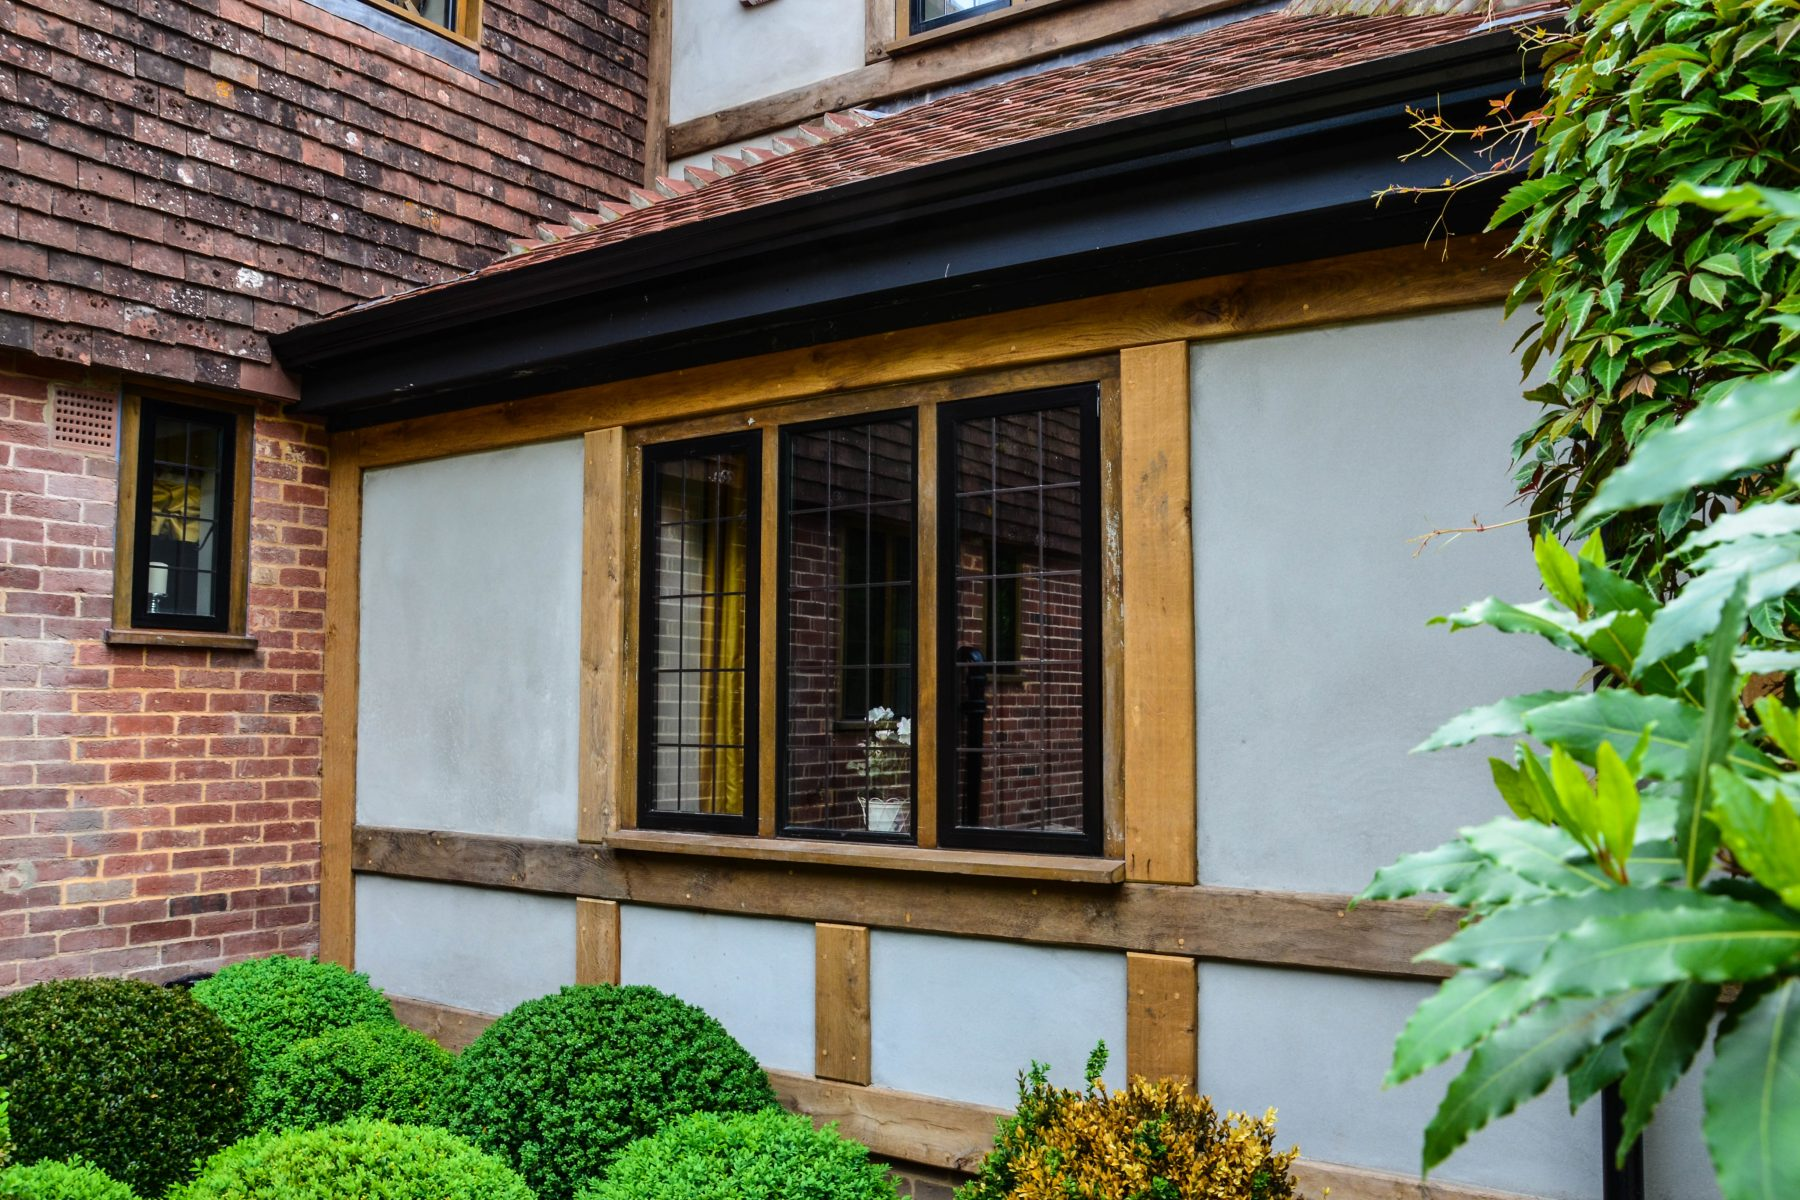 French casement windows photos houzz - Black Casement Windows In Heritage Home